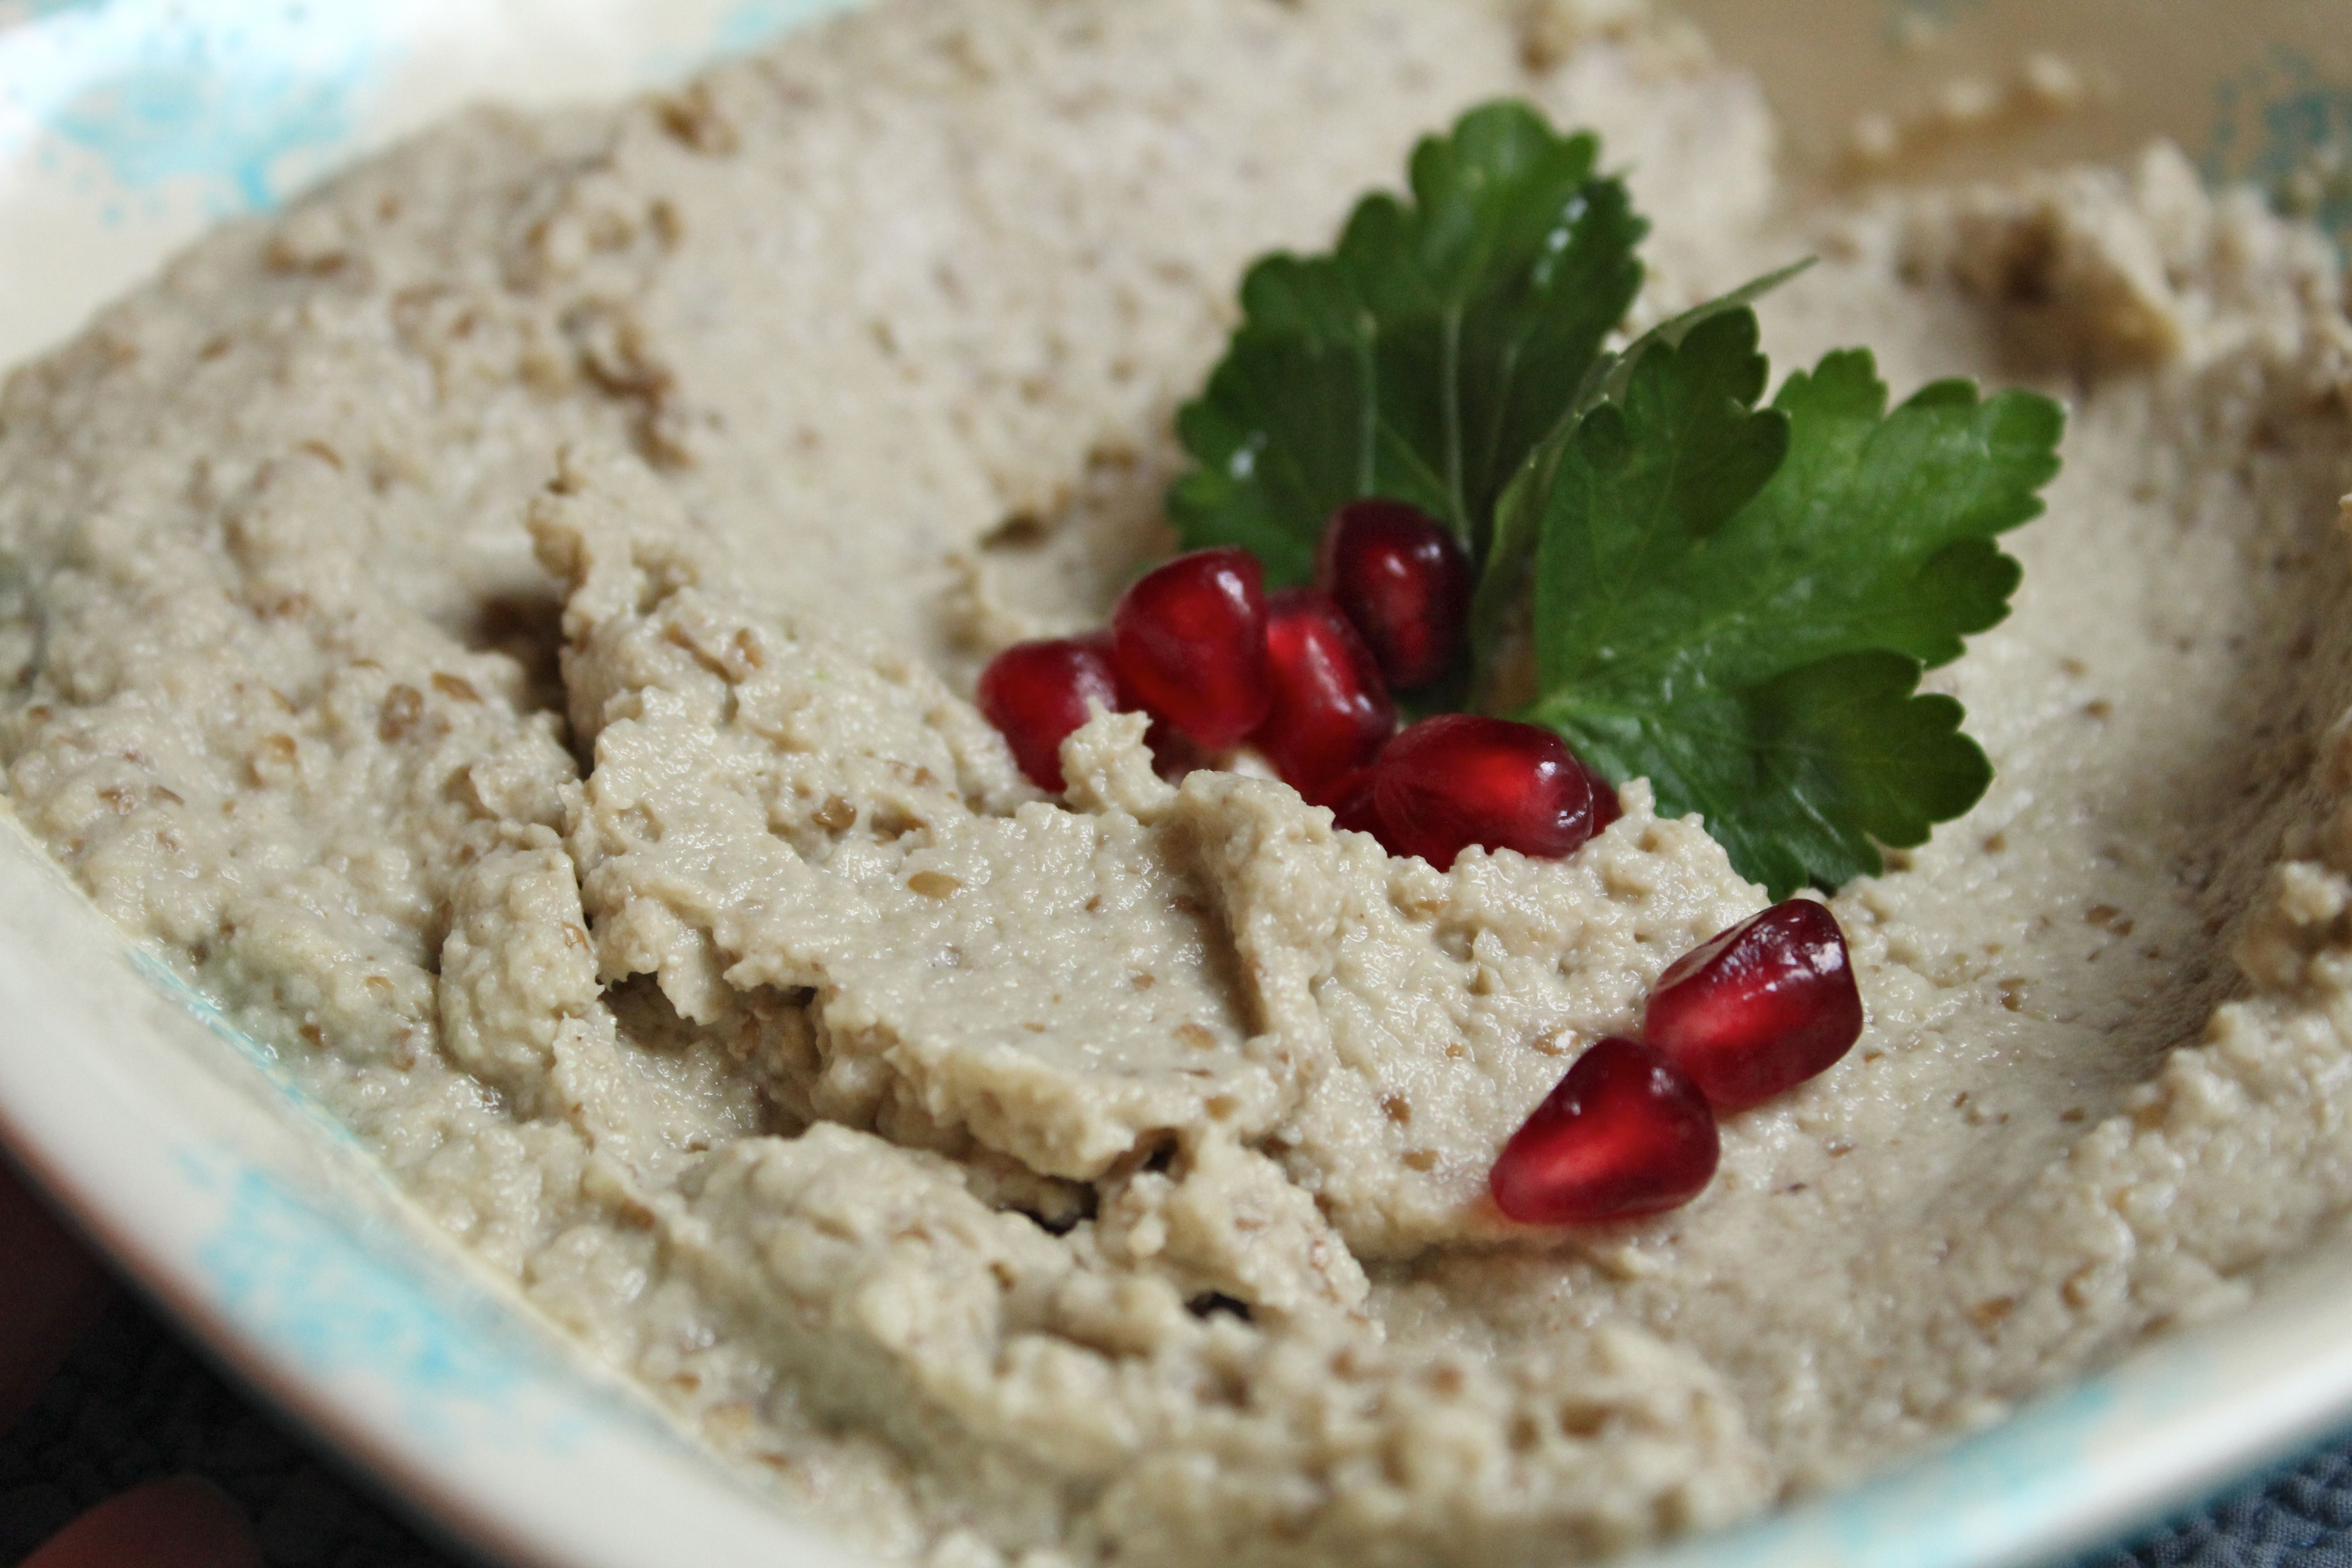 Baba Ghanoush, garnished with pomegranate seeds and parsley